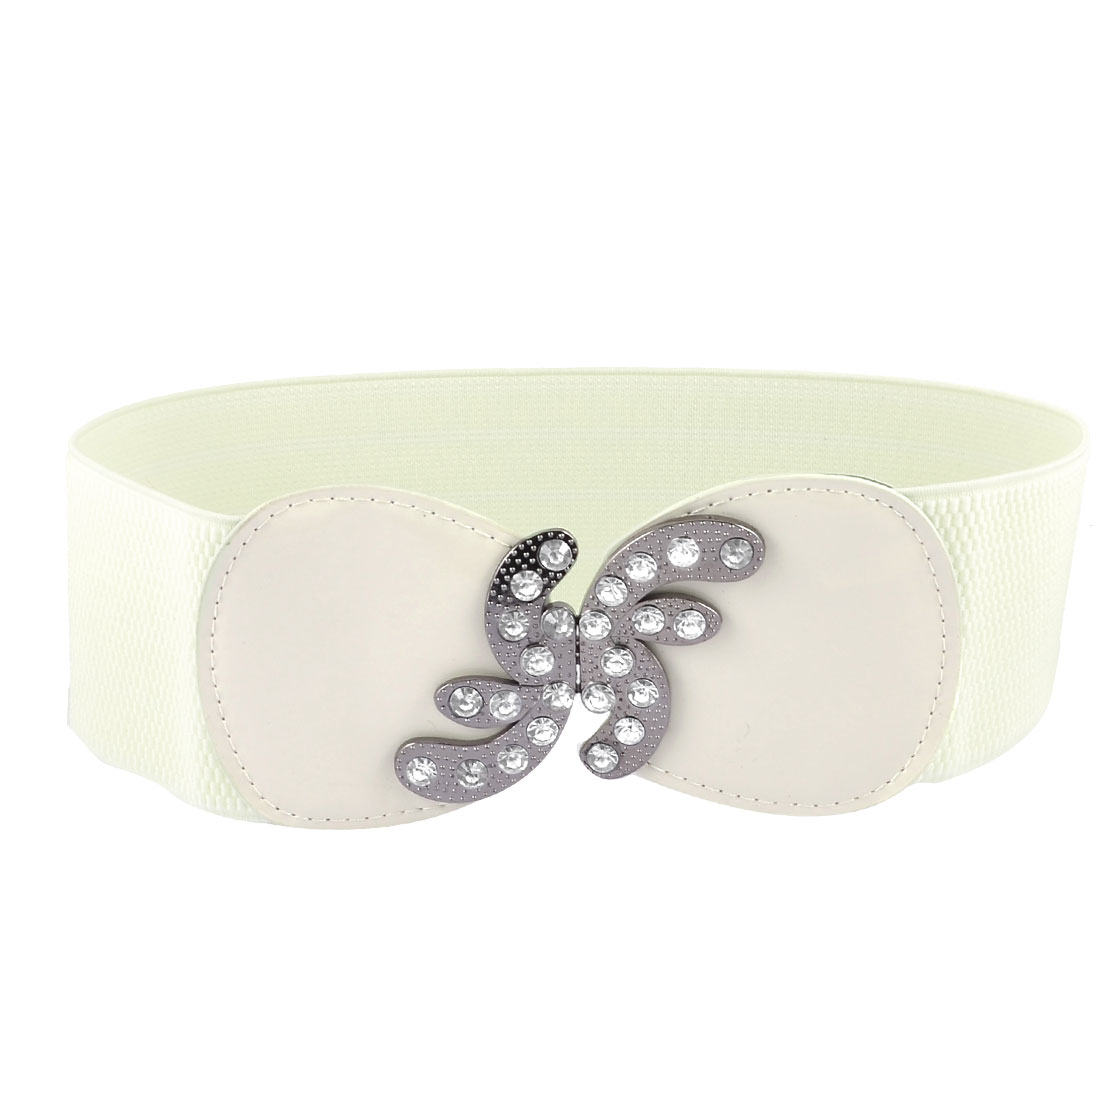 Women Glittery Rhinestones Interlocking Closure Elastic Waistband Cinch Belt Beige